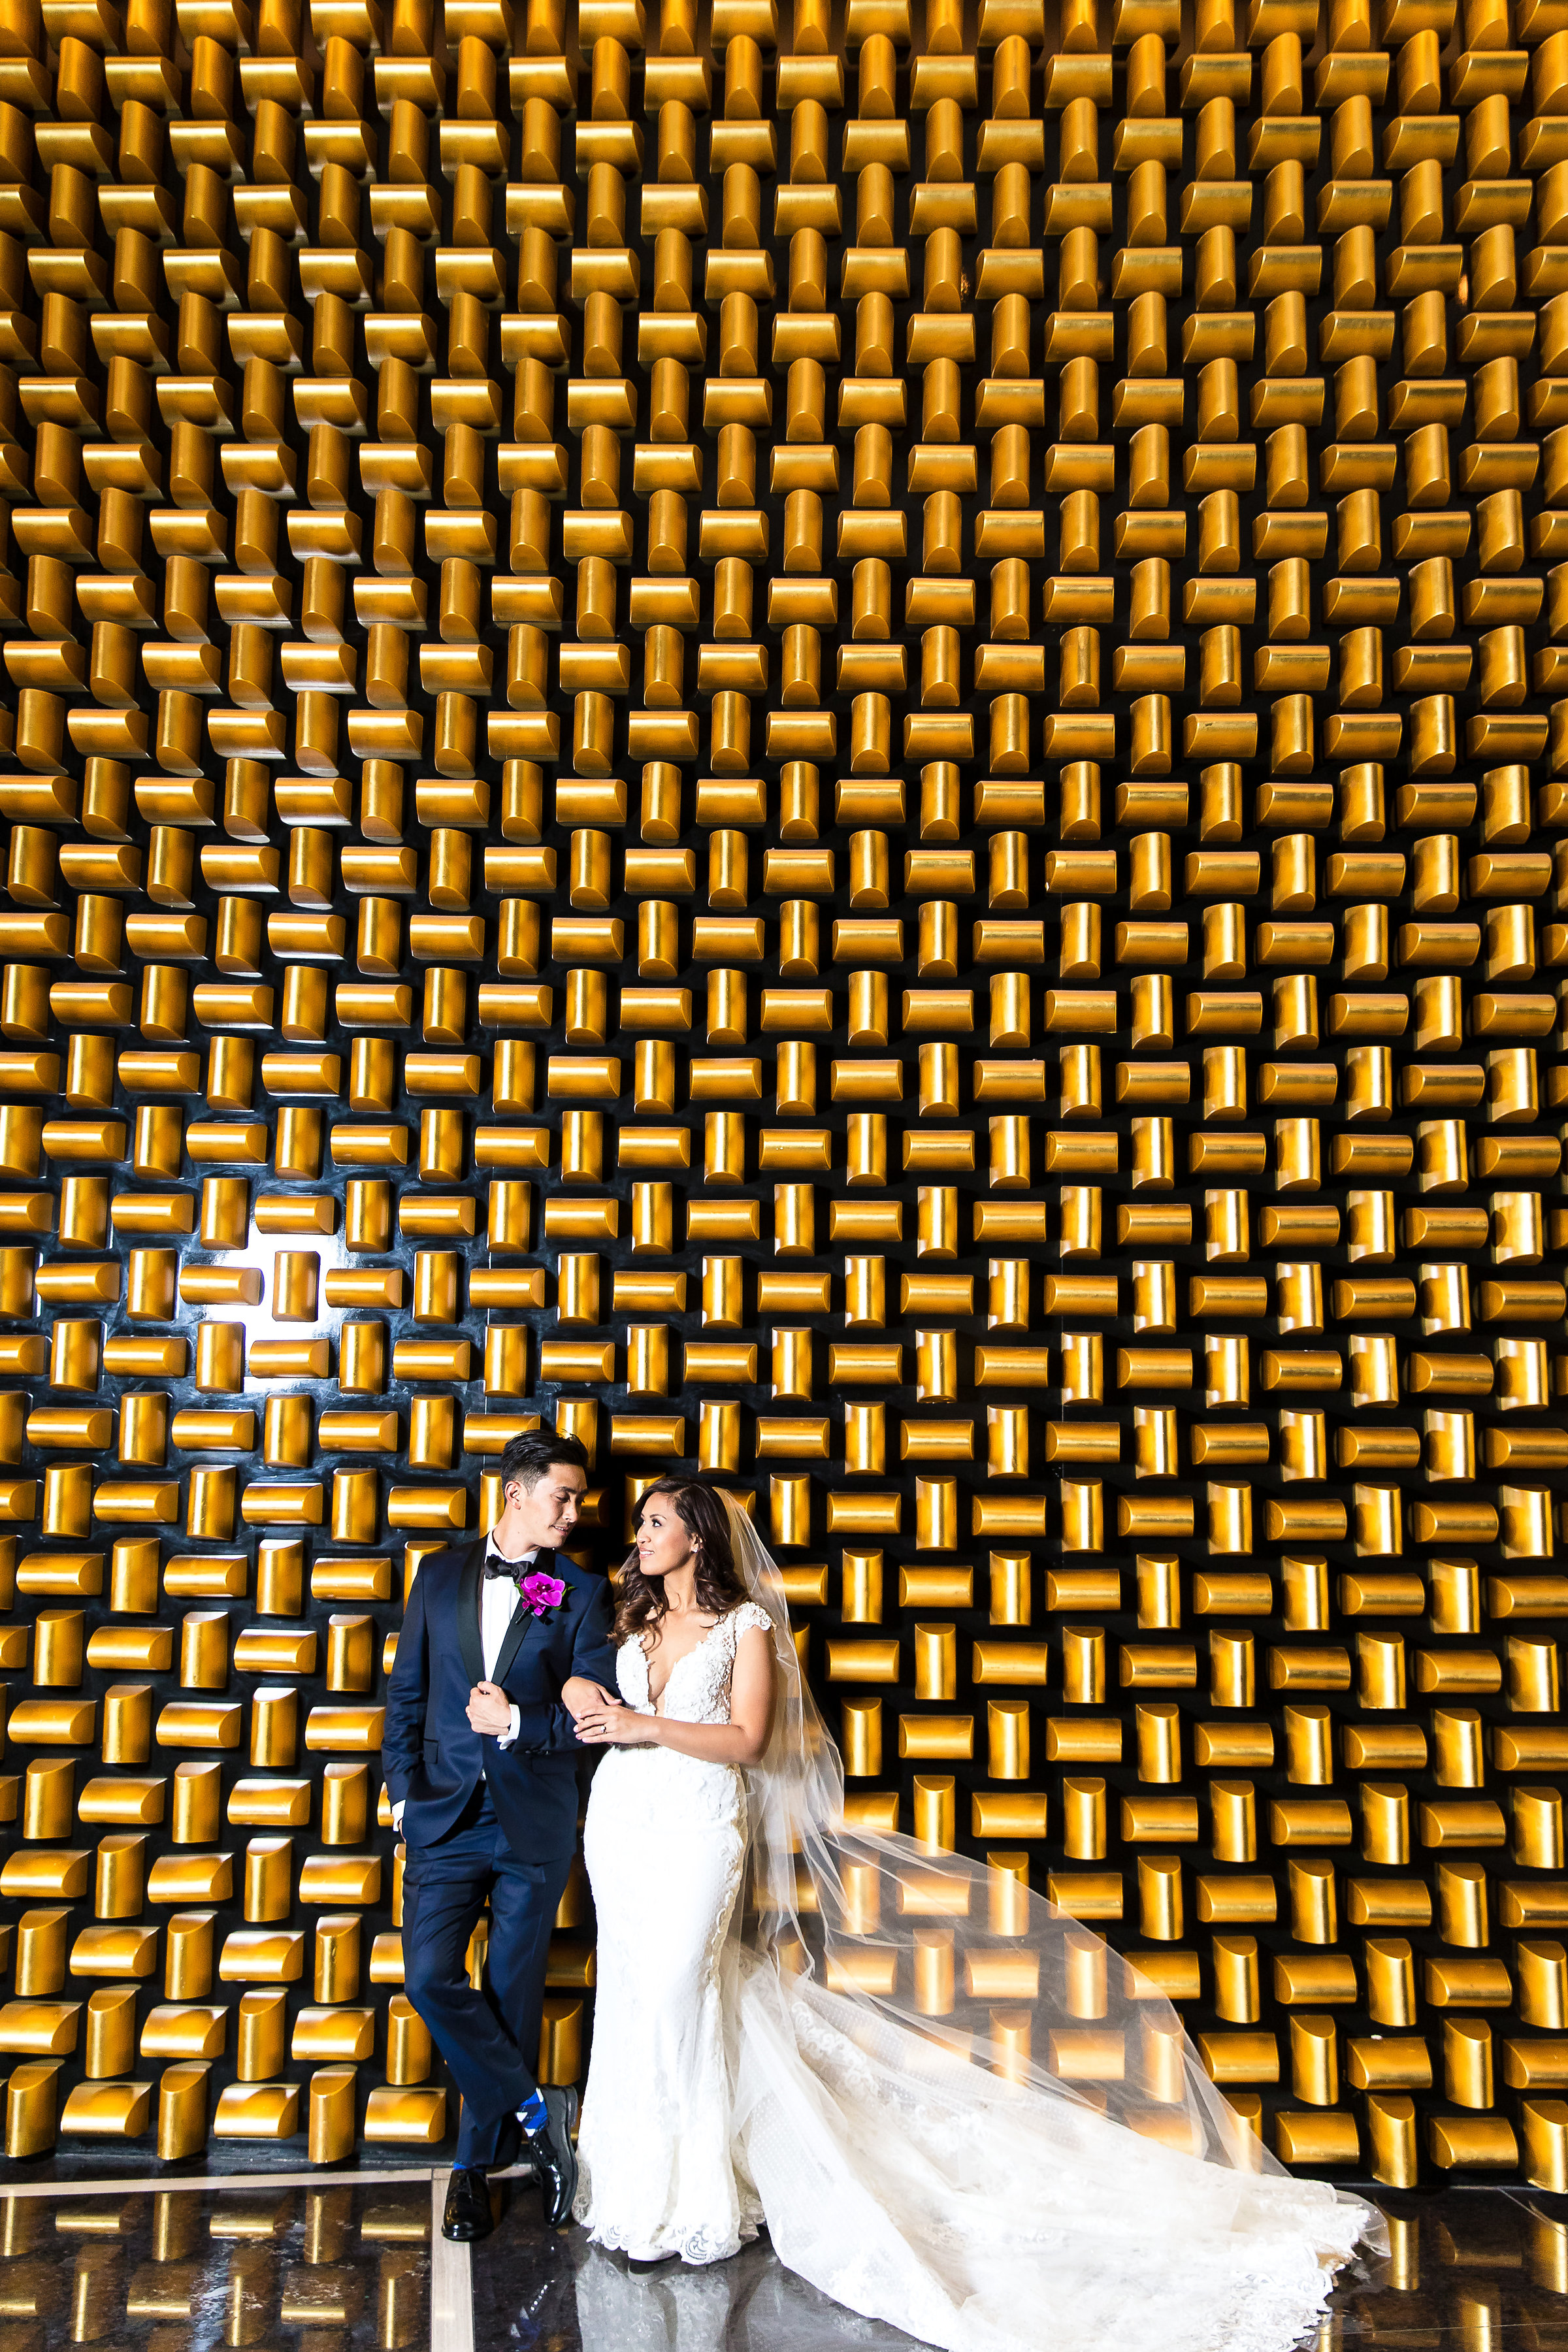 Iconic gold wall at the Mandarin Oriental Las Vegas. Brides and grooms love this as a photo backdrop!  Wedding Planner: Andrea Eppolito Events    Photography  Brian Leahy    Videography  HOO Films    Venue & Catering:  Mandarin Oriental  / Waldorf Astoria   Floral & Decor: Destinations by Design    Lighting: LED Unplugged    Music:  DJ Breeze II    Hair & Make Up: Amelia C & Co    Invitations by  Bliss & Bone    Menu and Escort Cards by  Meldeen